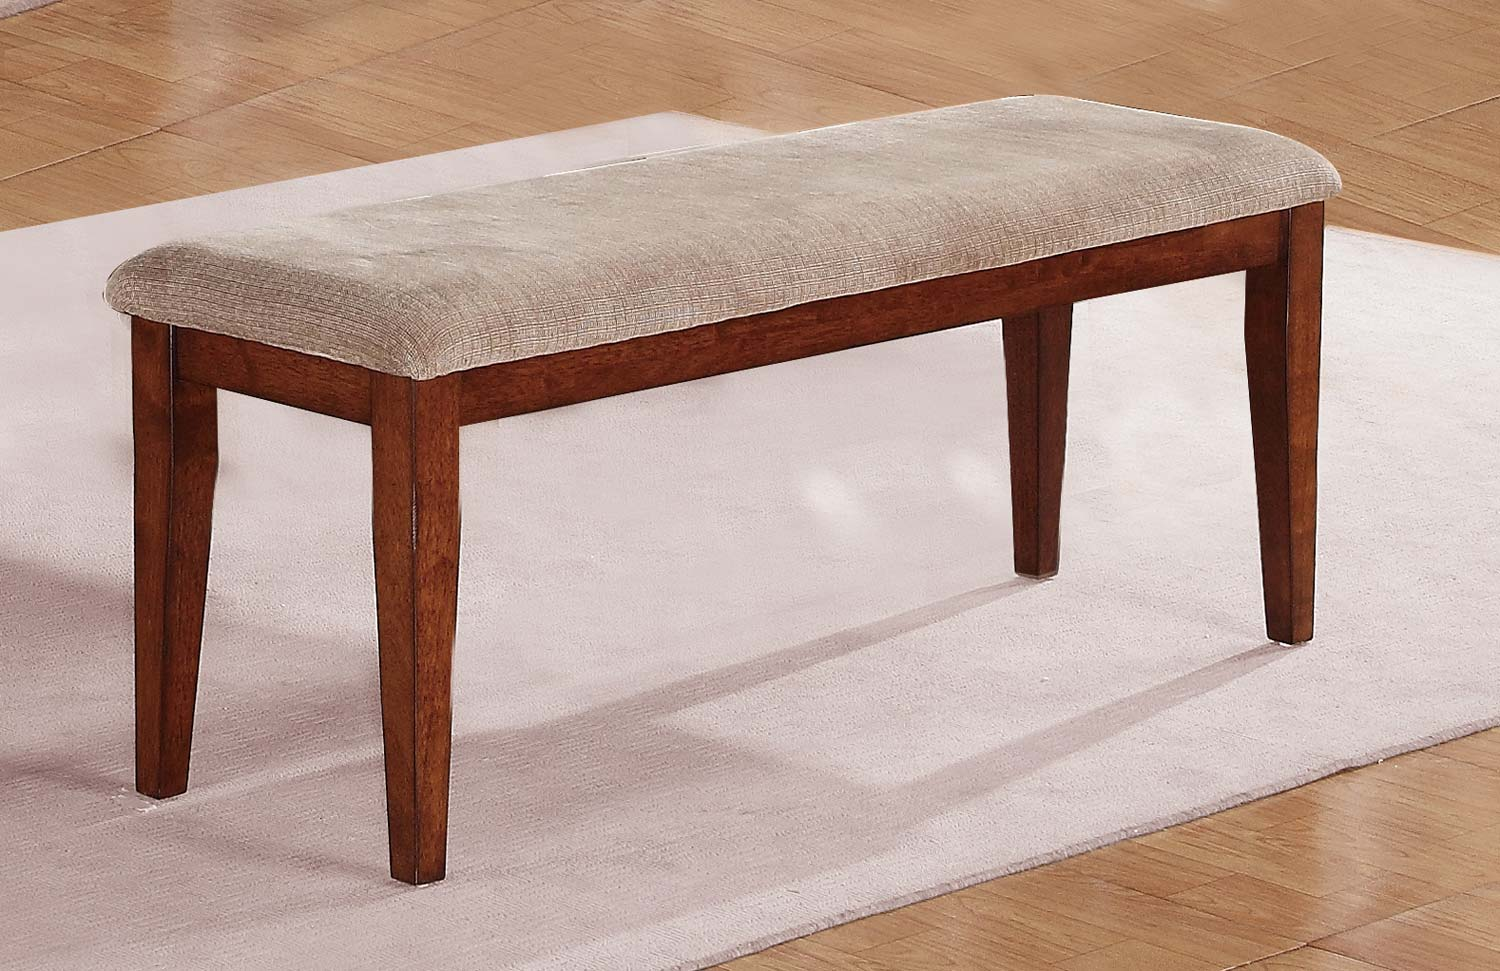 Homelegance Oldsmar 48in Bench - Neutral Toned Brown Fabric